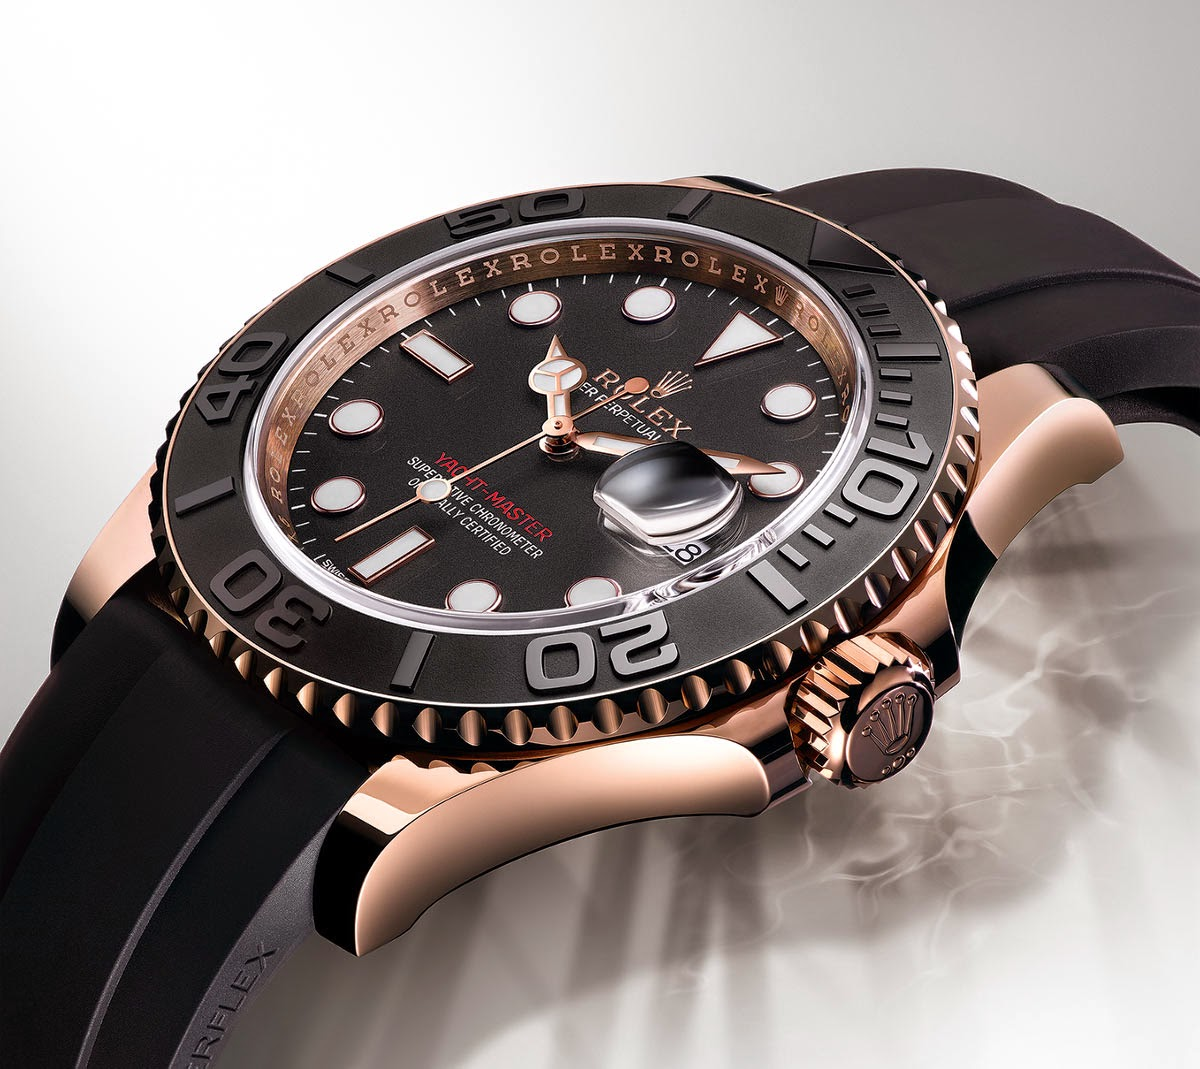 Rolex - Yacht-Master 2015 Reference 116655 Rolex-Yacht_Master_116655_Basel2015-5